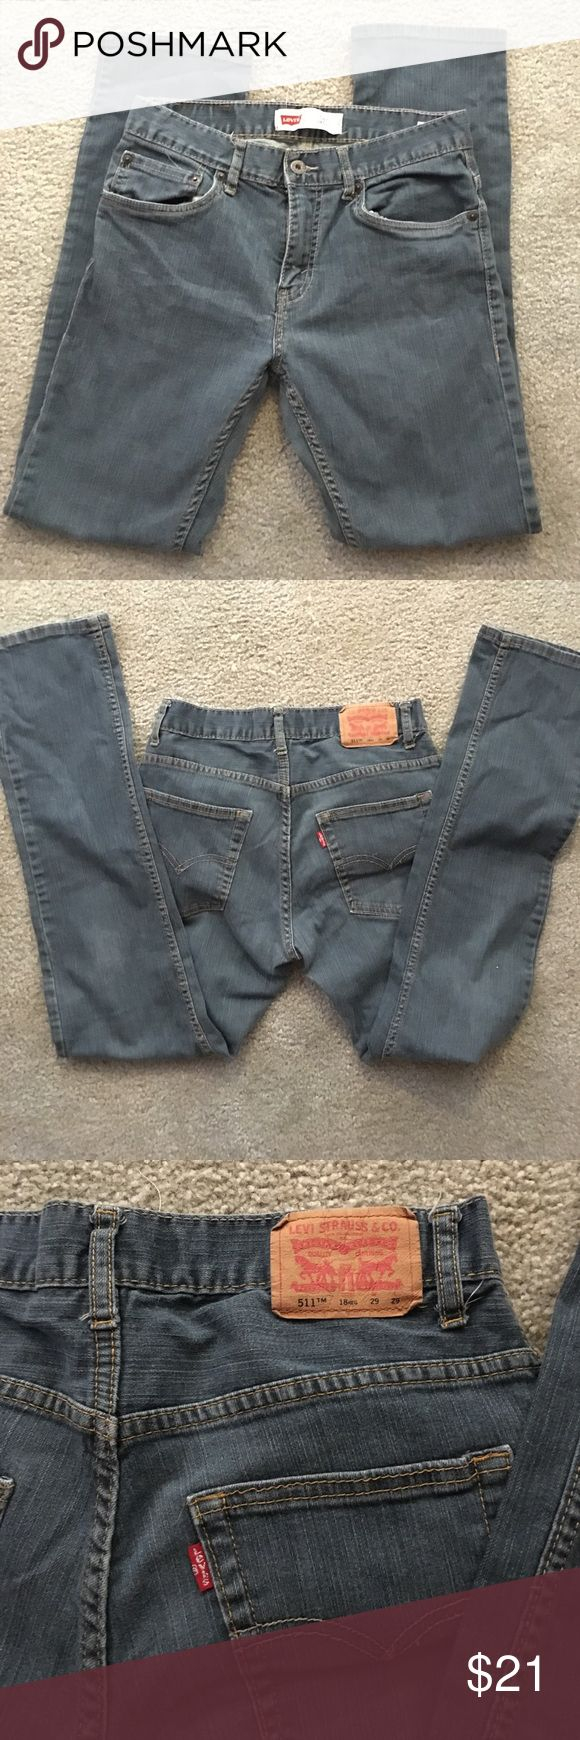 Levi's 511 Slim cut 29X29 Levi's 511 slim tag reads waist 29 inches length 29 inches.    actual measurement 31 inches waist inseam 29 1/2 inches nice fade 99% cotton 1% spandex Levi's Jeans